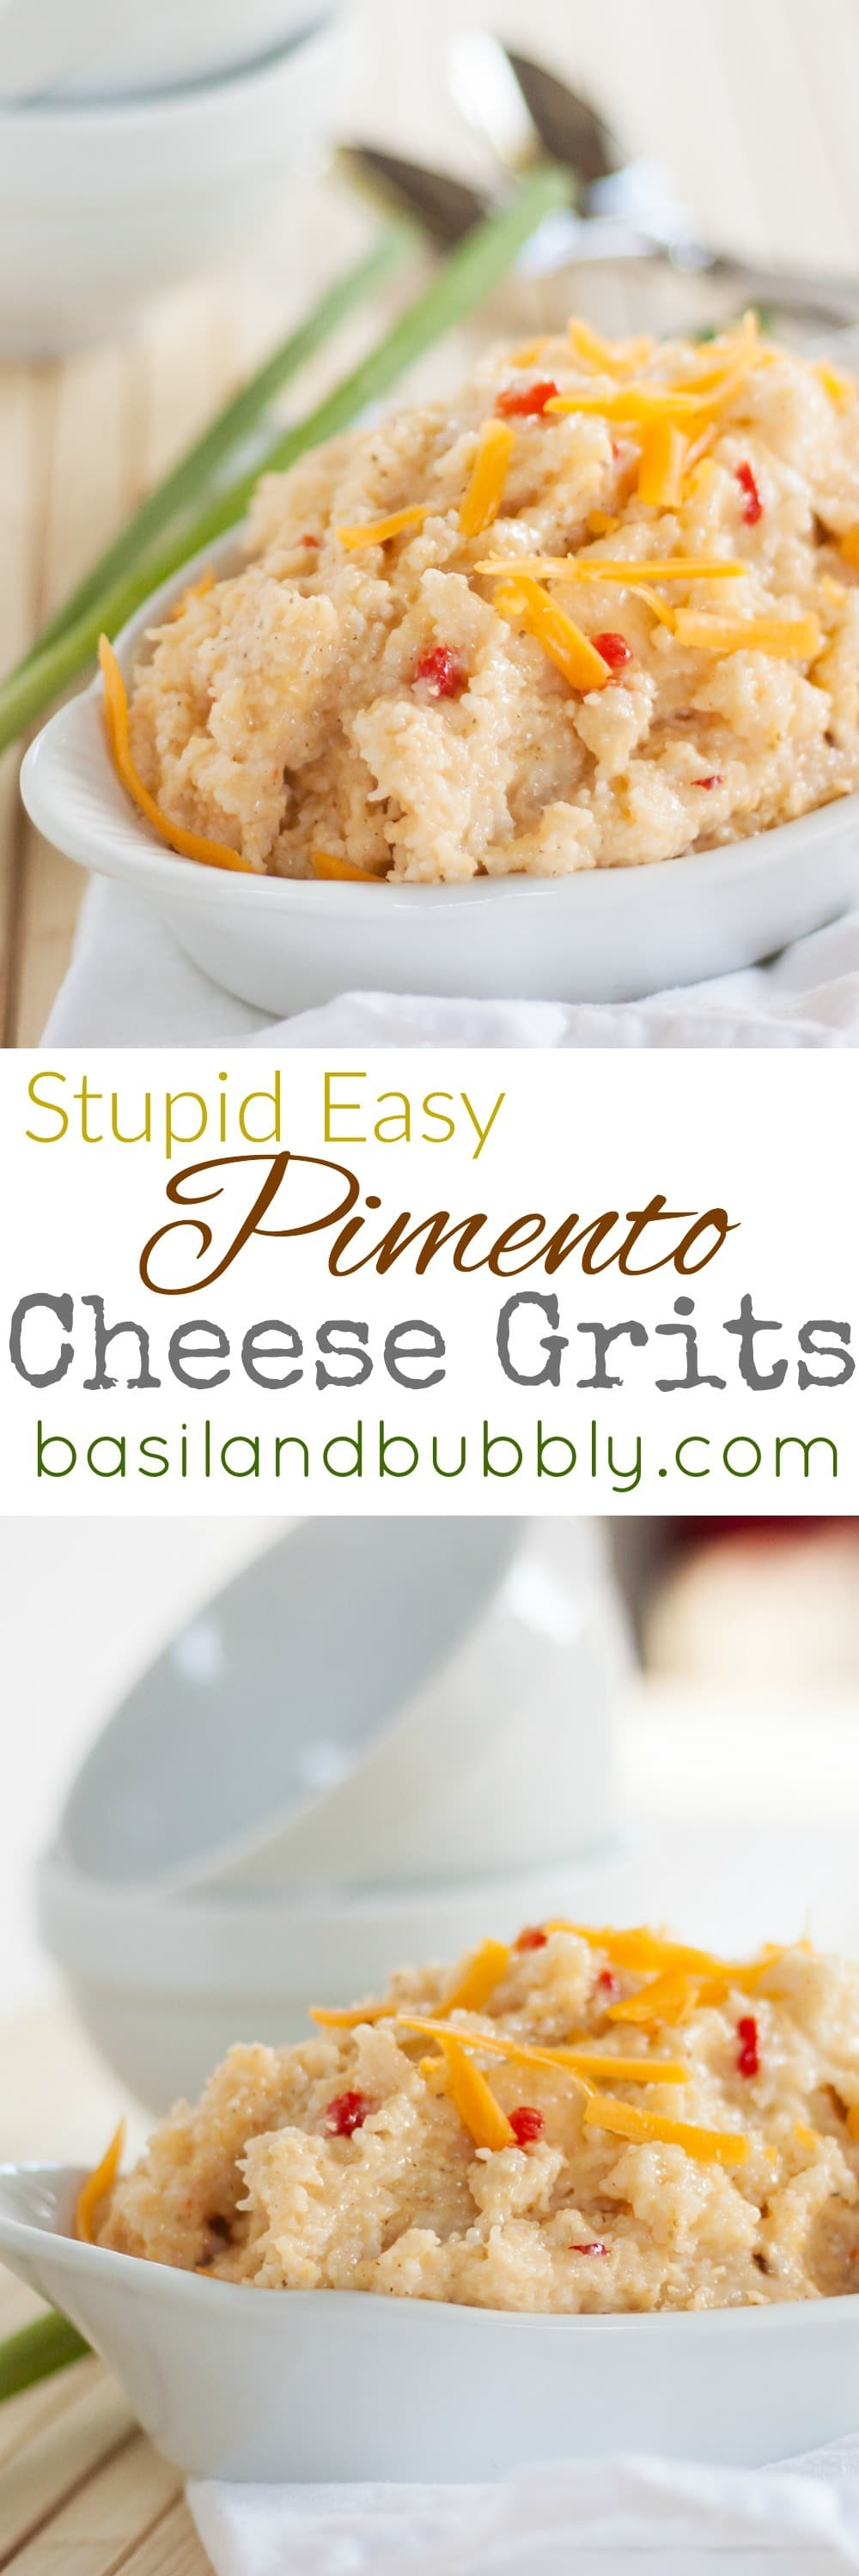 Easy Pimento Cheese Grits